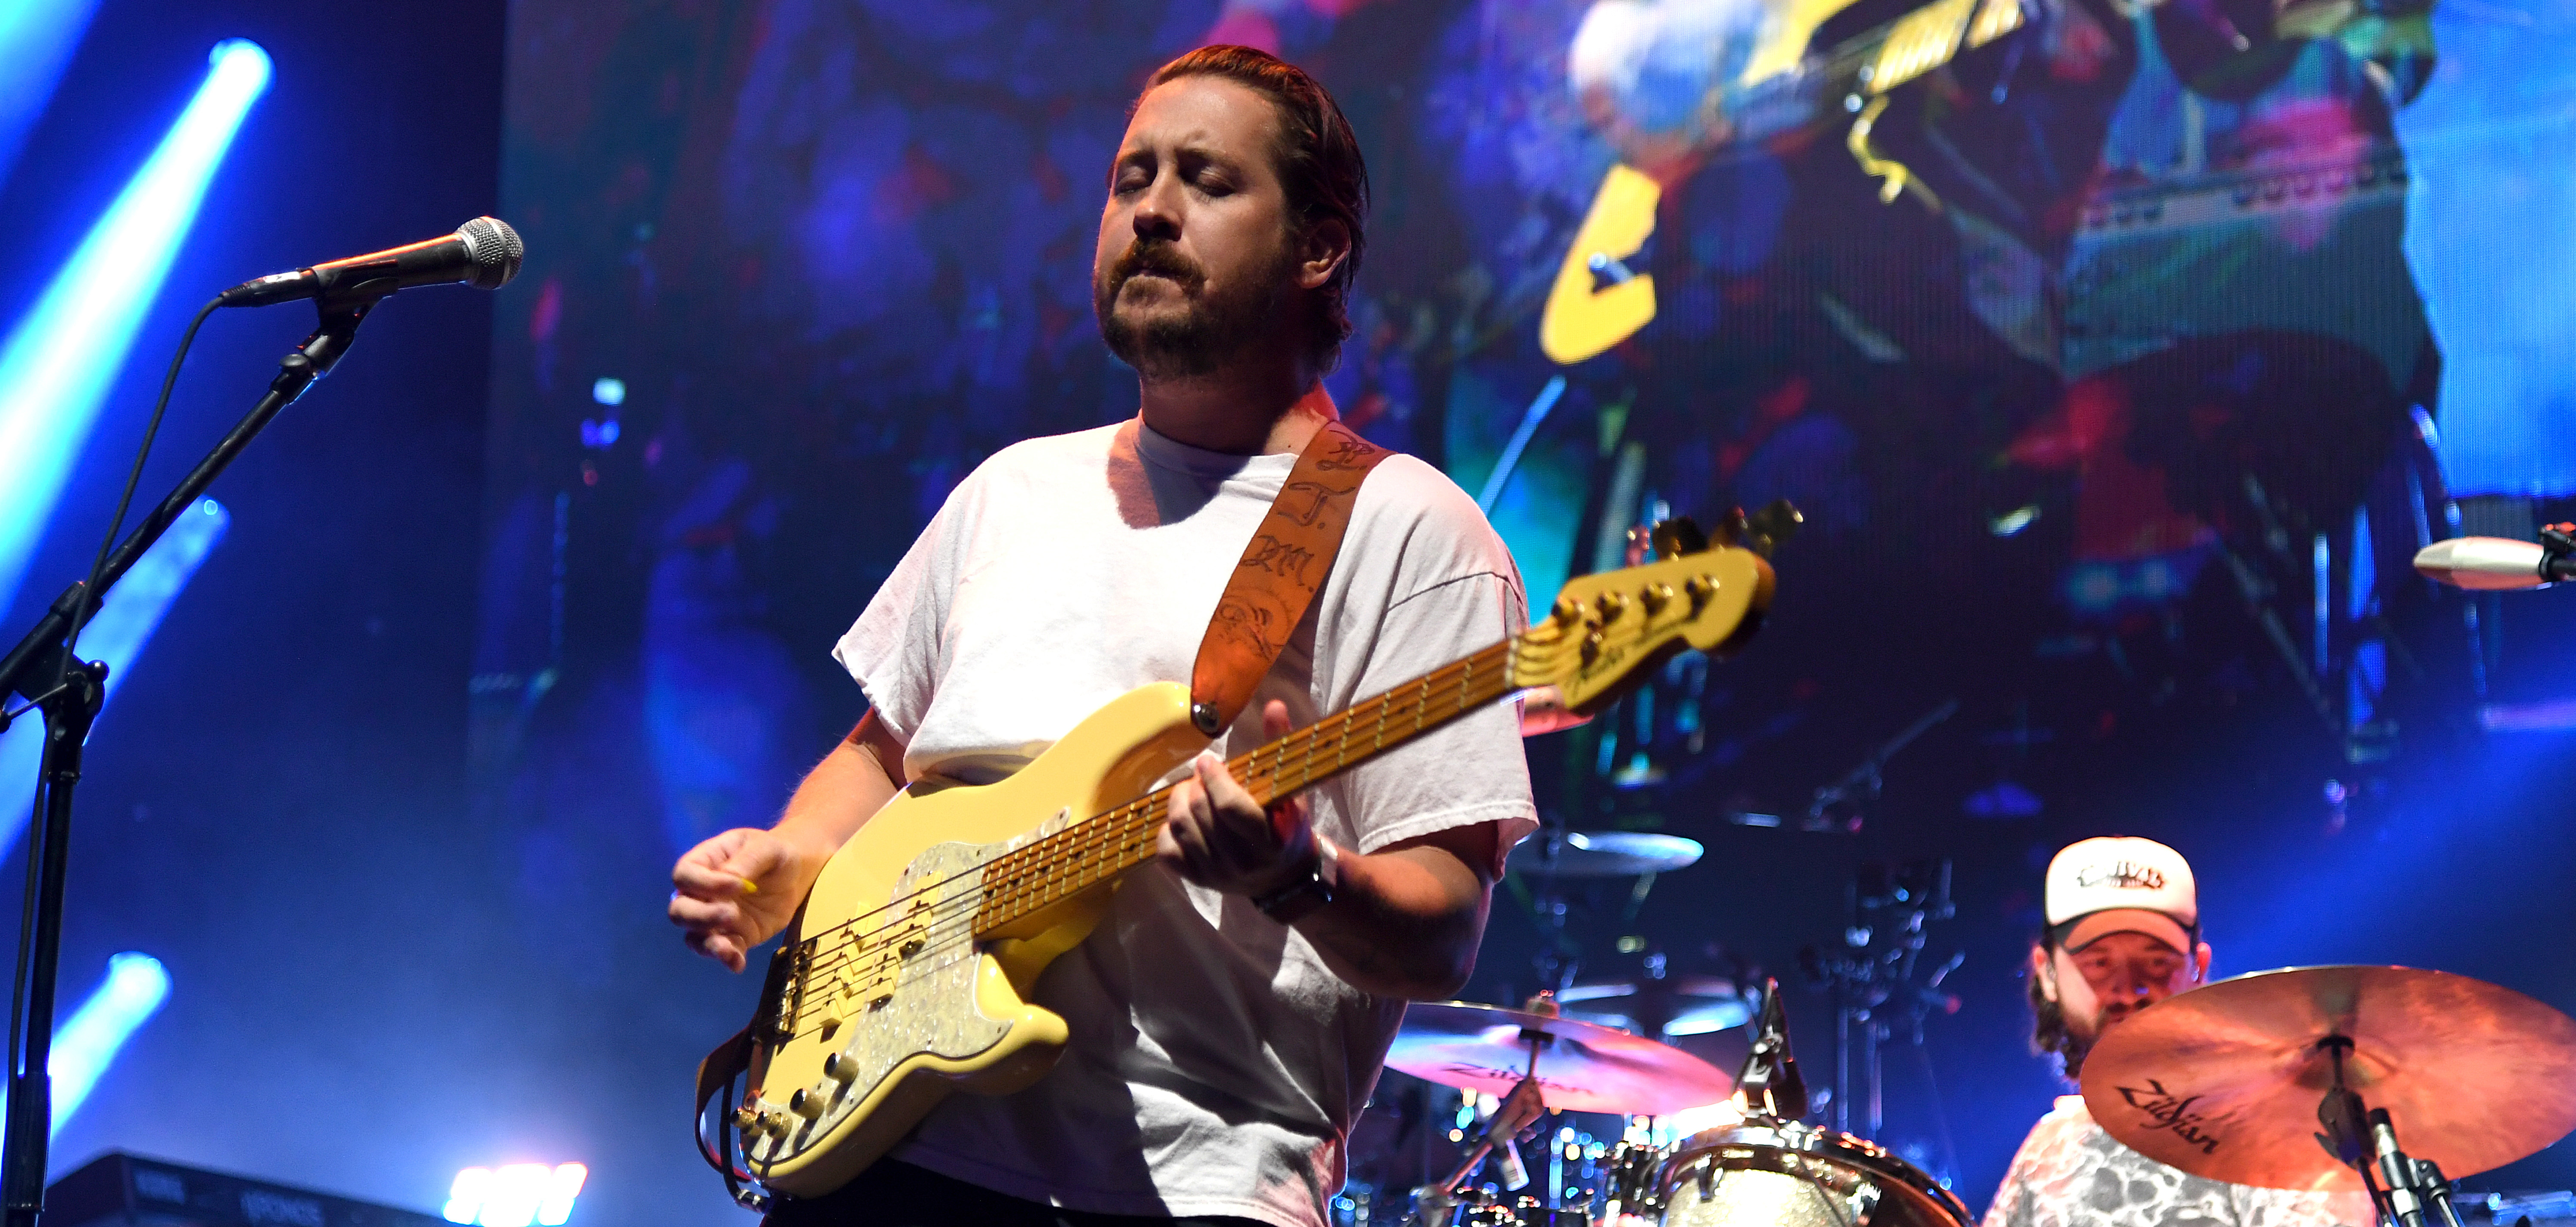 Portugal. The Man To Send Banned Books to Students